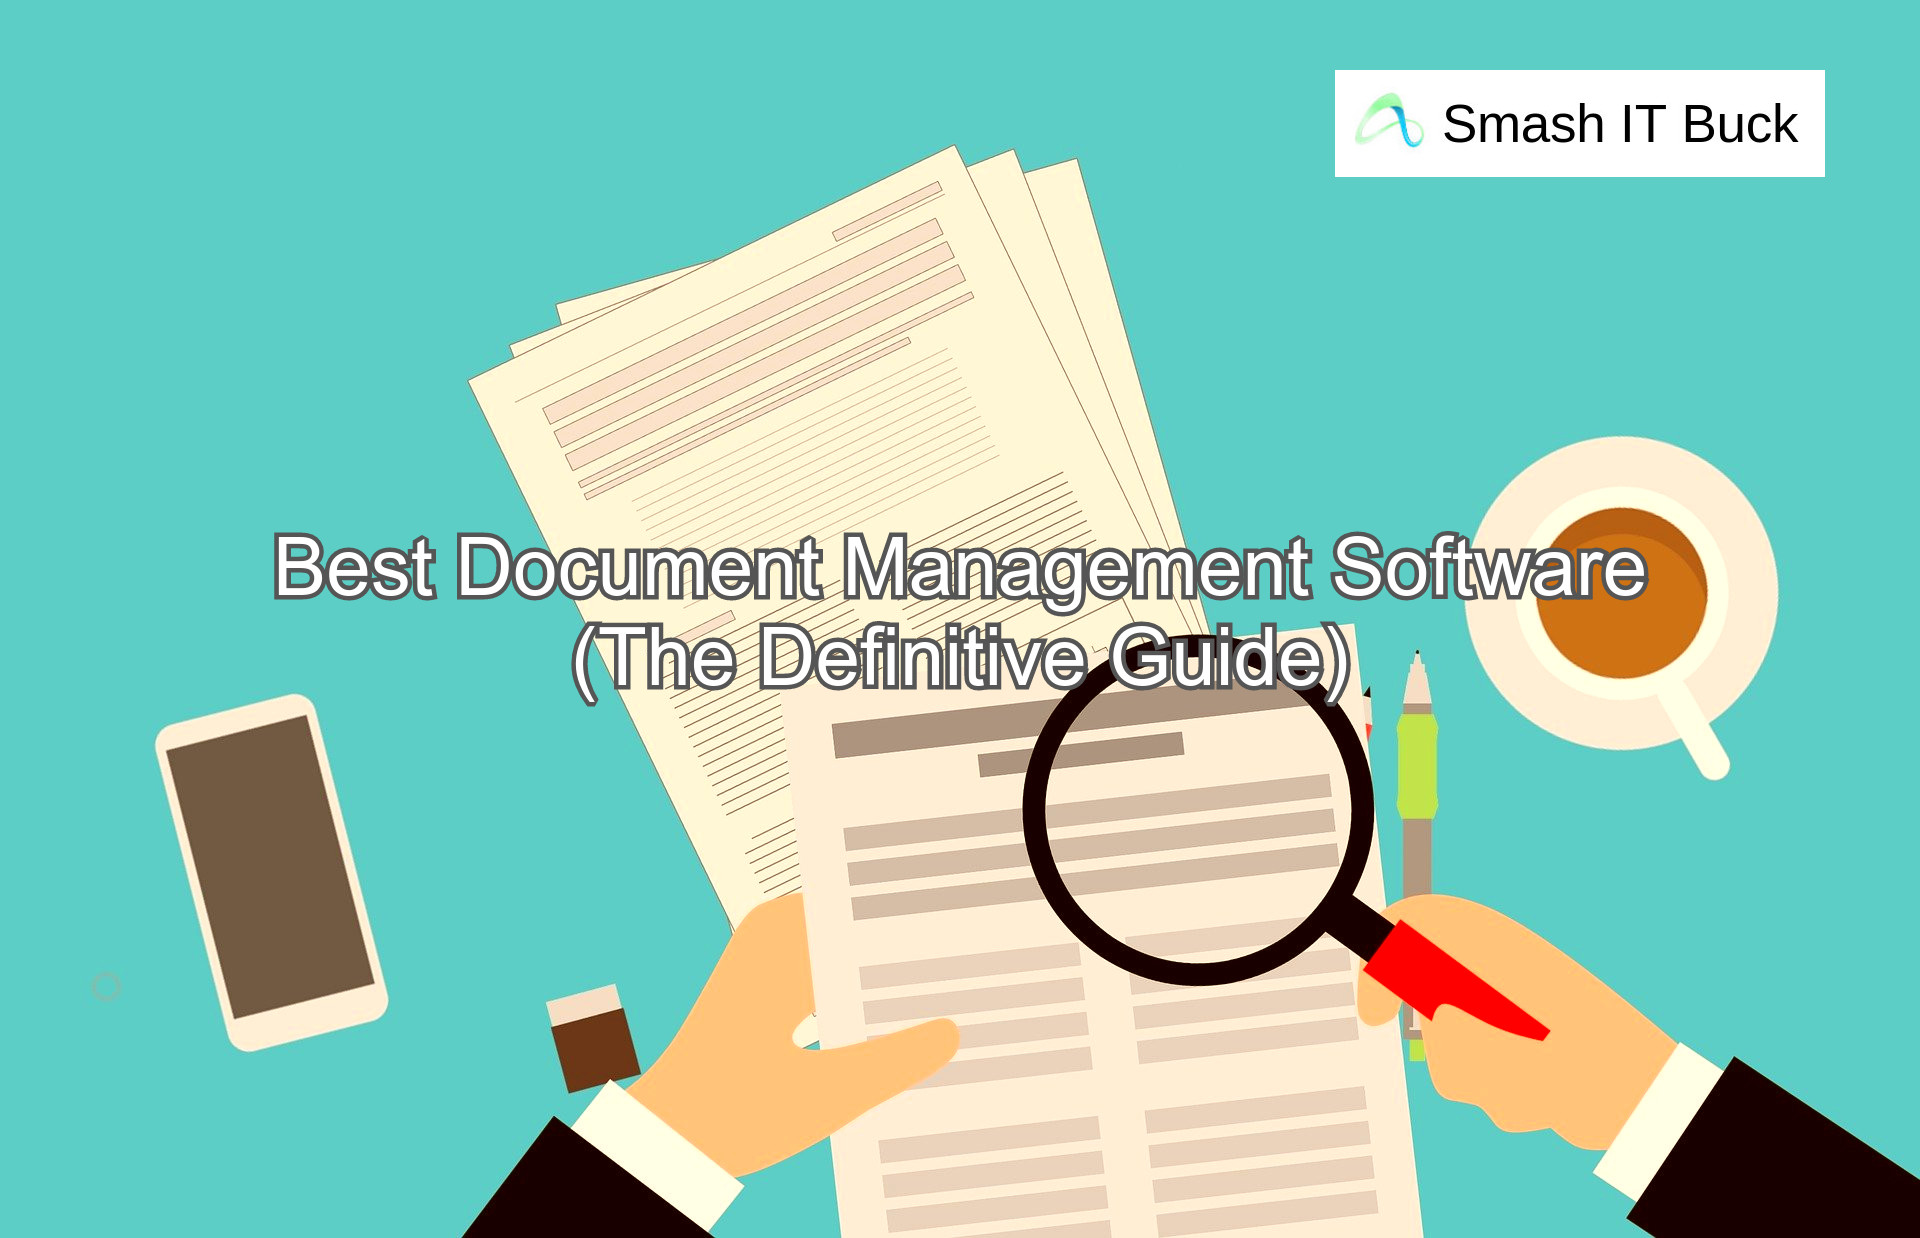 Best Document Management Software of 2021